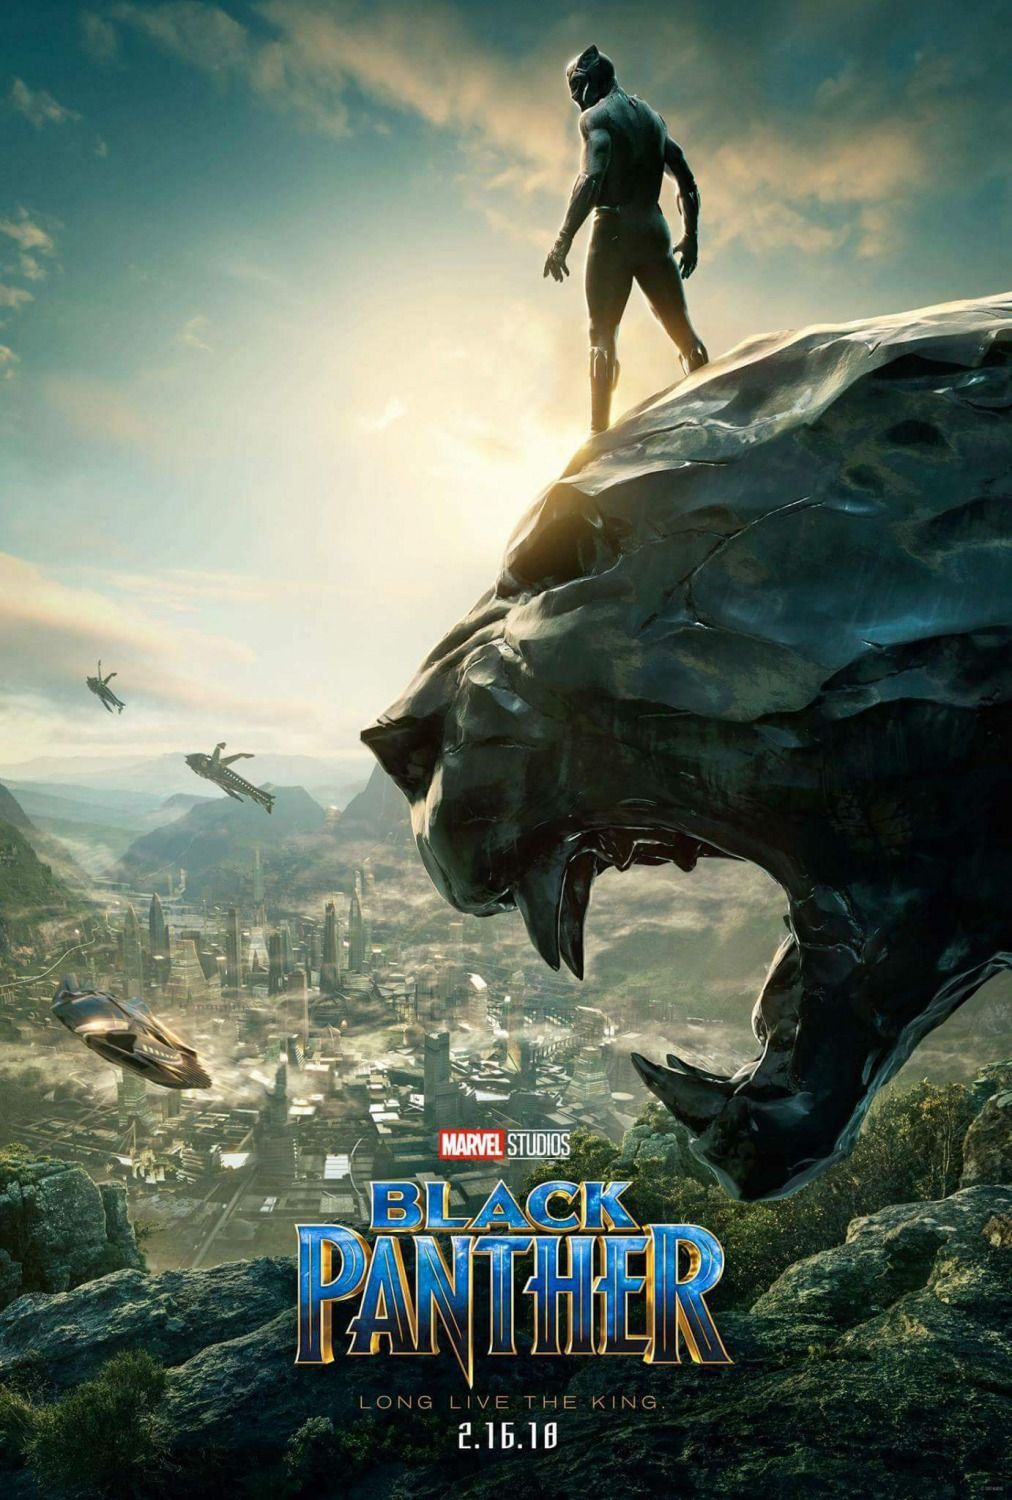 Return To The Main Poster Page For Black Panther 2 Of 2